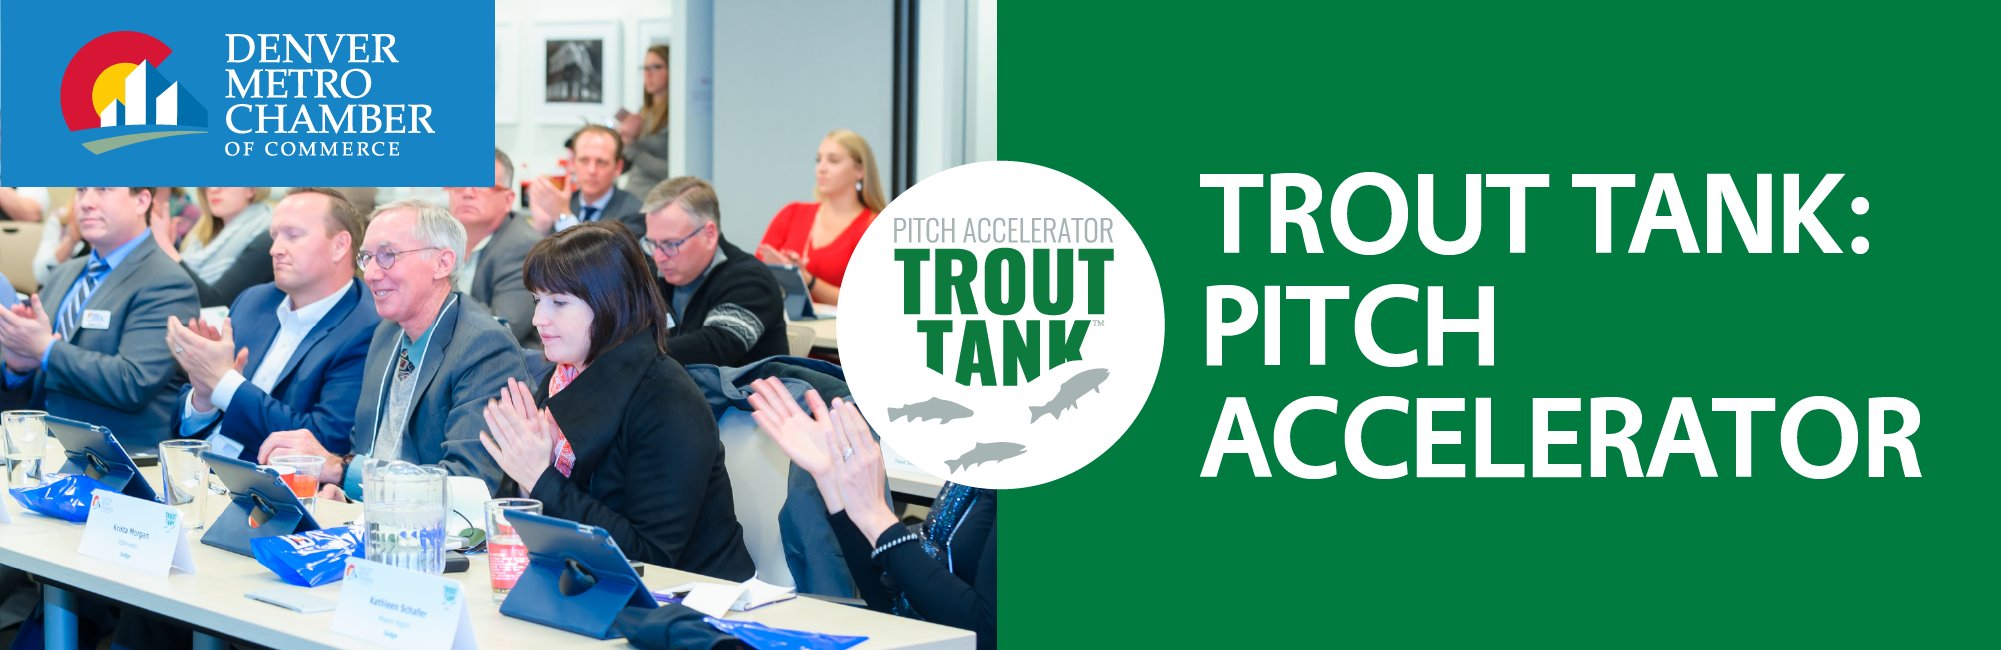 Trout Tank Food Frenzy: Pitch Accelerator